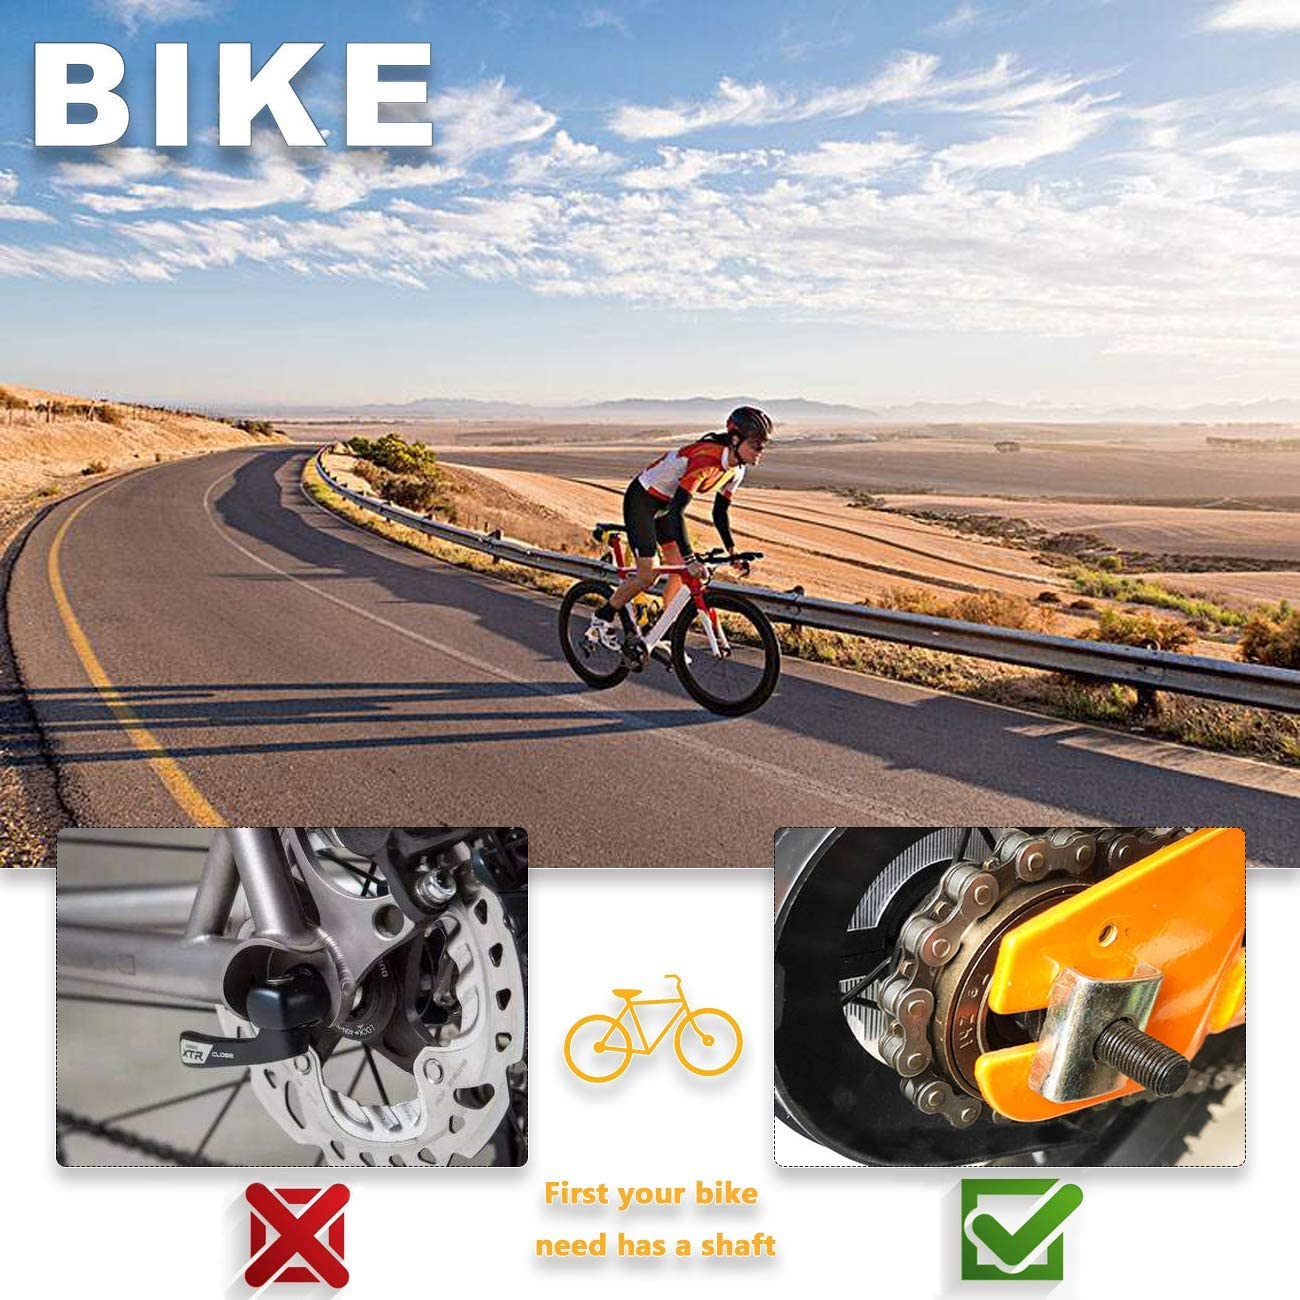 Bike Pegs Aluminum Alloy Anti-Skid Foot Pedals Backseats Stands for BMX Mountain Bike Bicycle Cycling